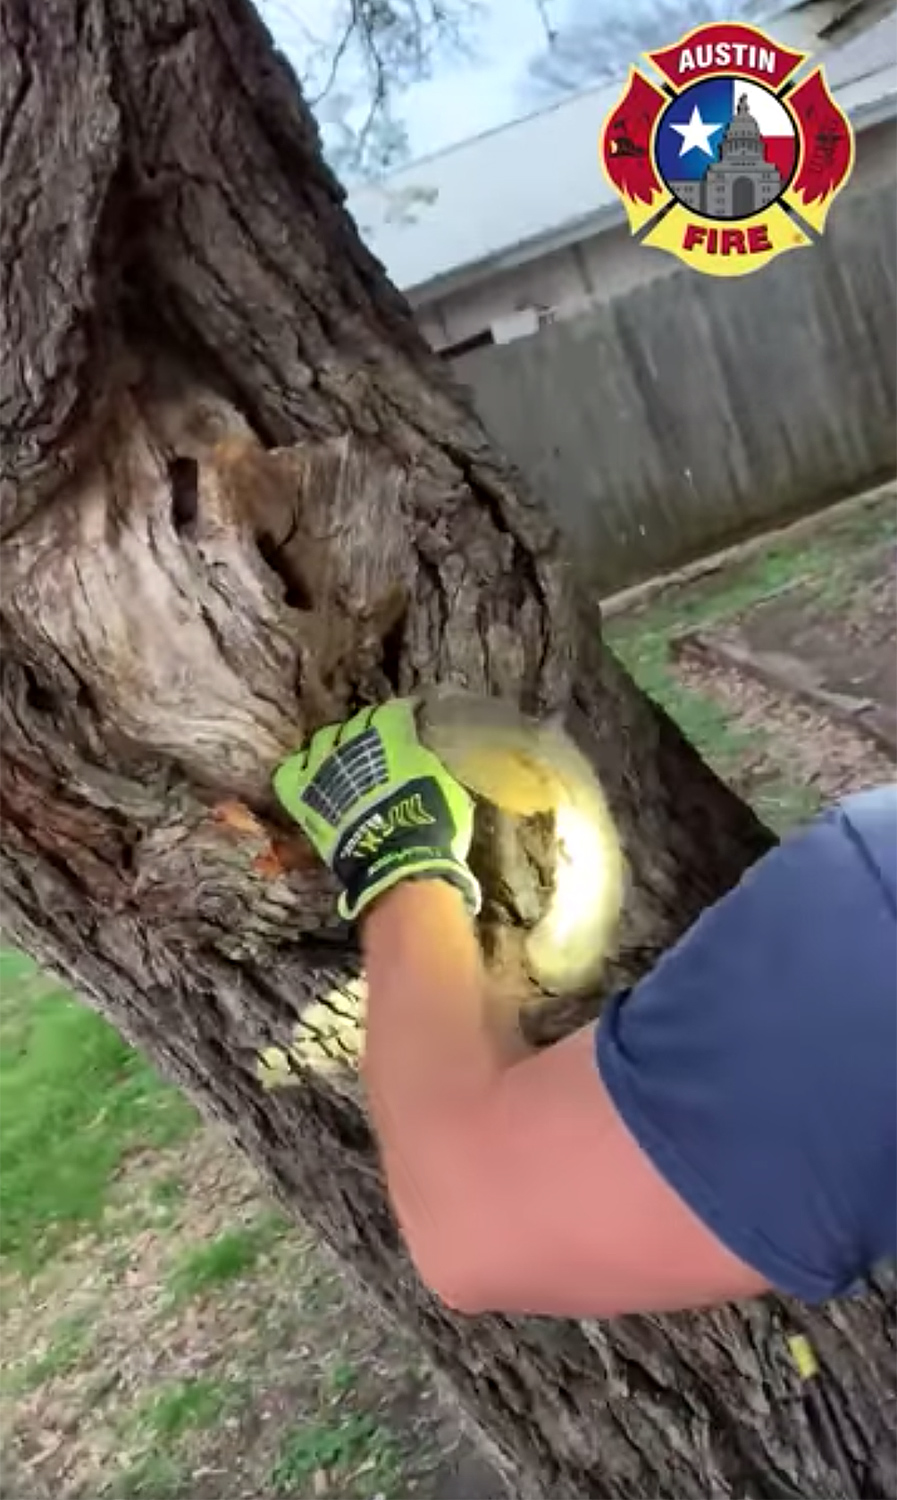 Austin Firefighters Save Squirrel Who Got Its Head Stuck in a Tree: 'Not an April Fools' Joke